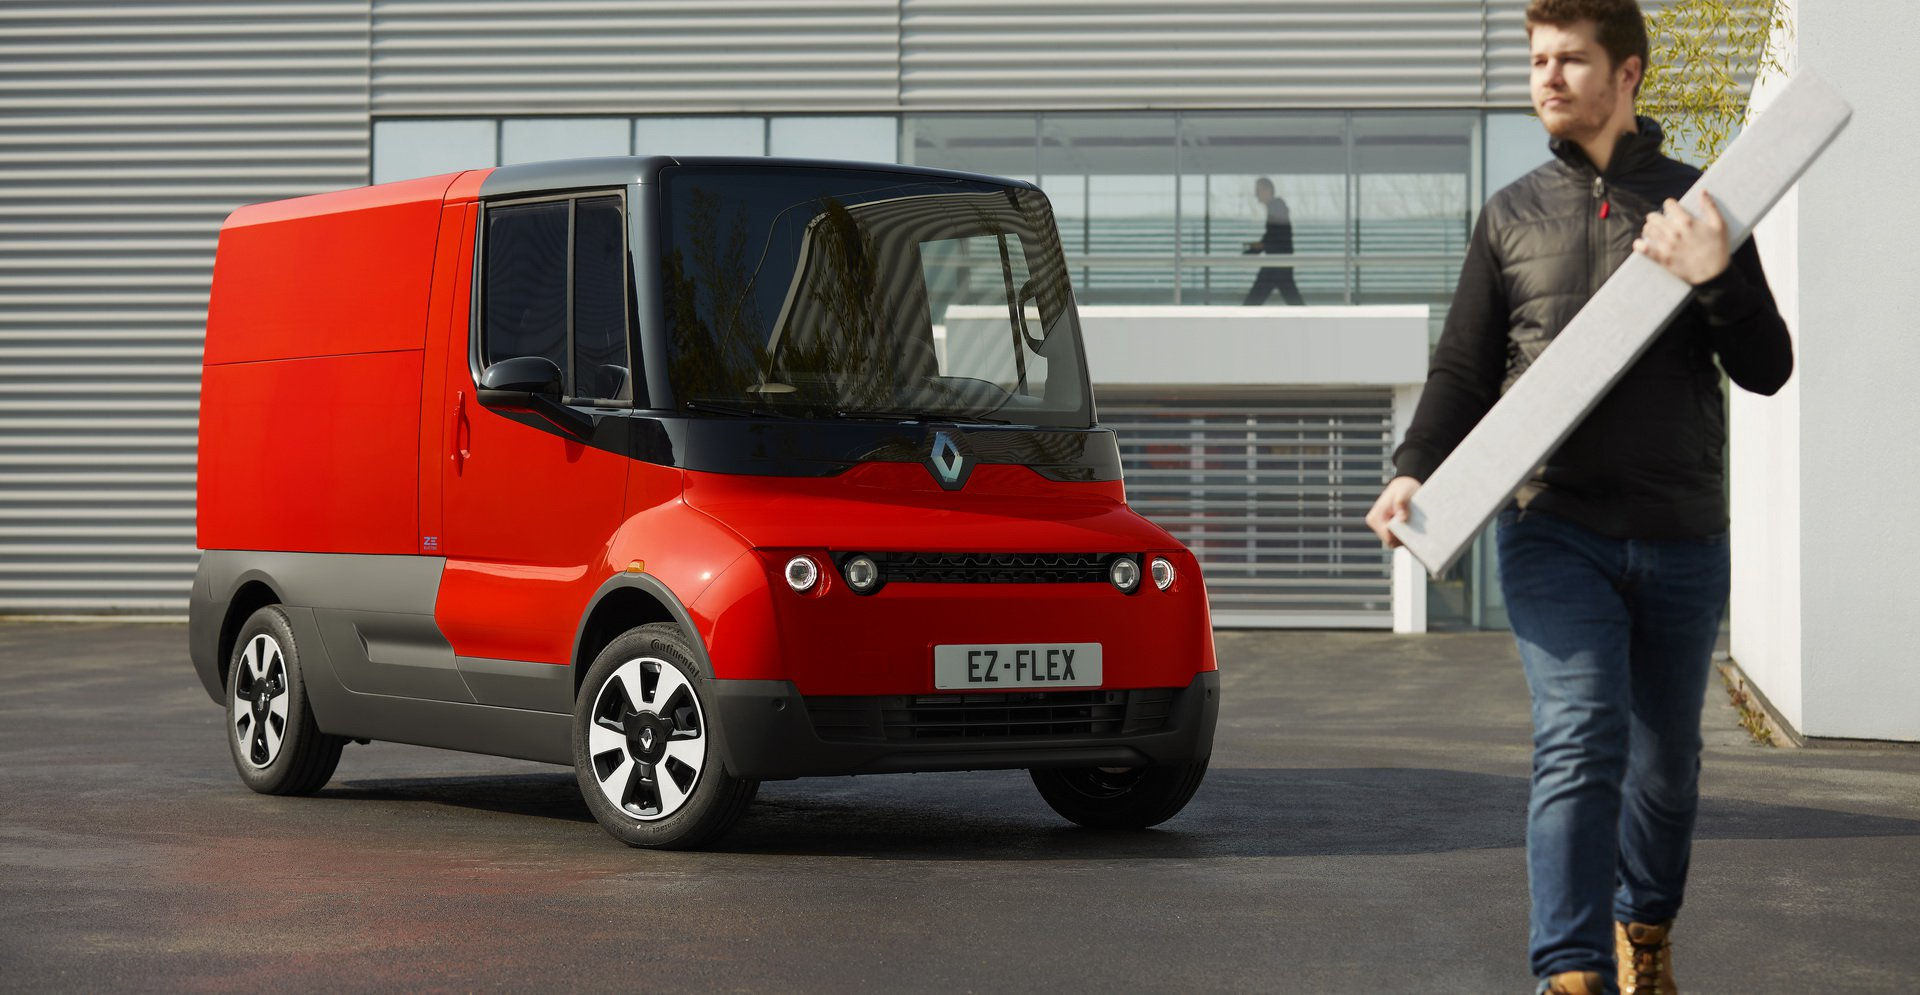 The idea of a battery-powered light commercial vehicle isn't really novel for Renault, who has already designed and built the likes of Twizy Cargo, Master Z.E. etc. Today, the company said that it was working on another electric MPV, called the EZ-Flex